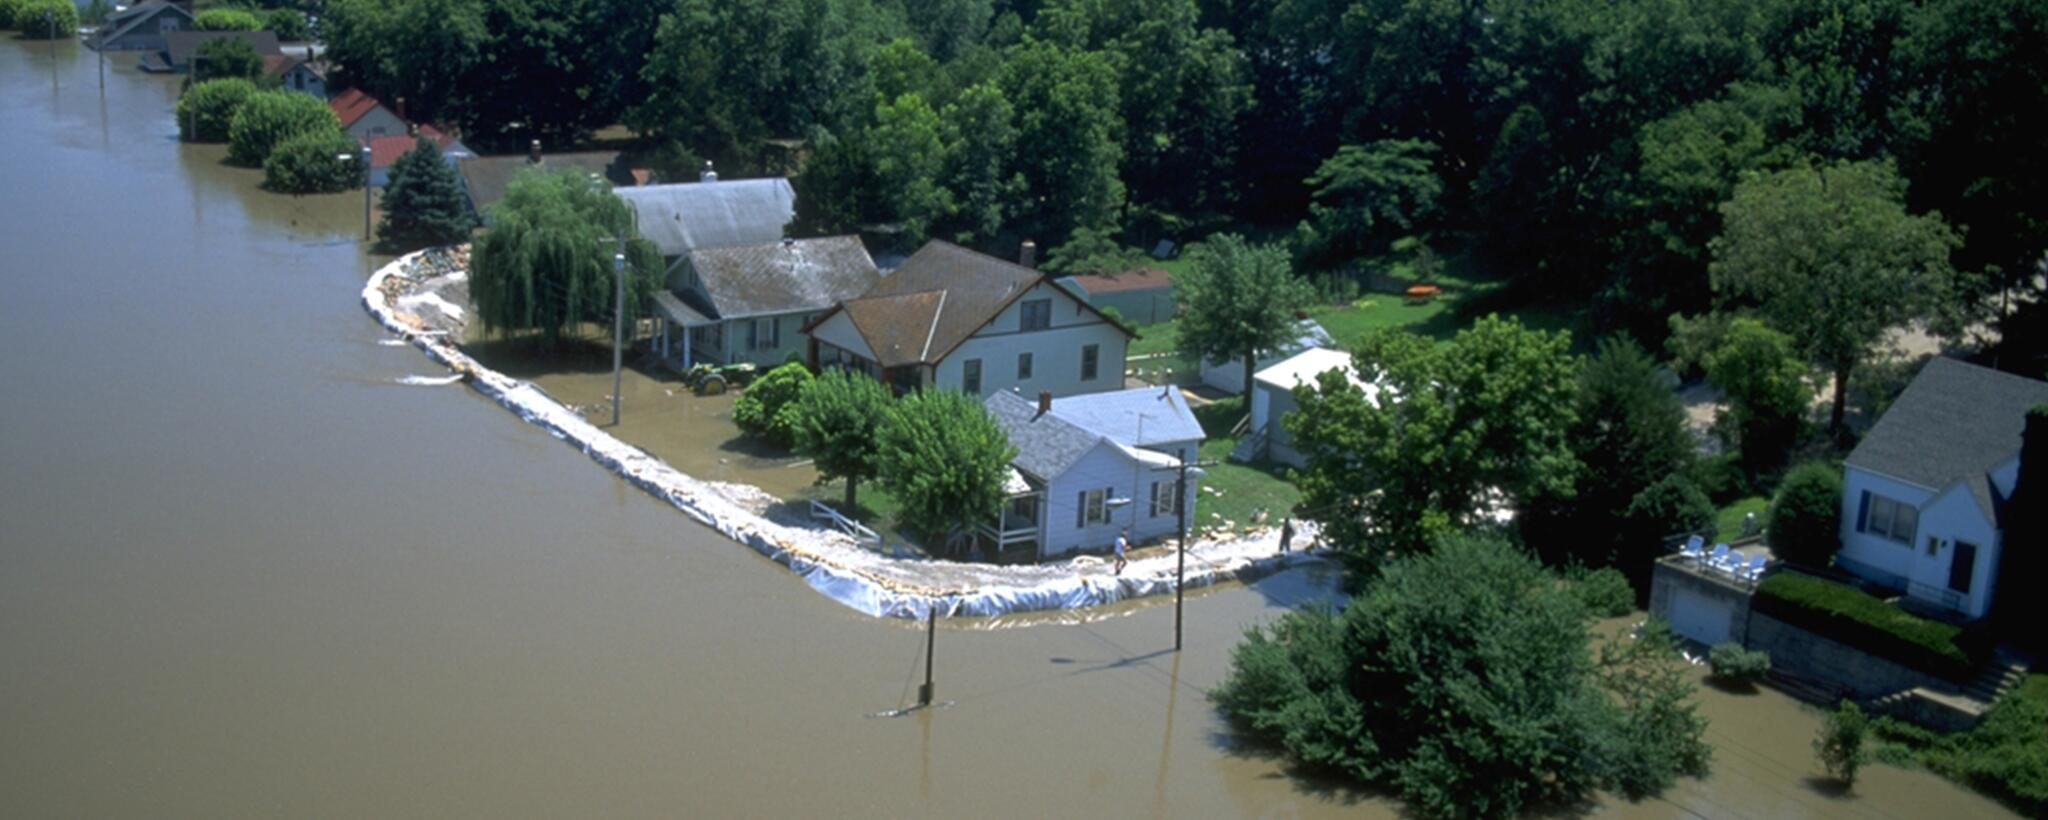 a house protected from flood waters by a barrier of sand bags.